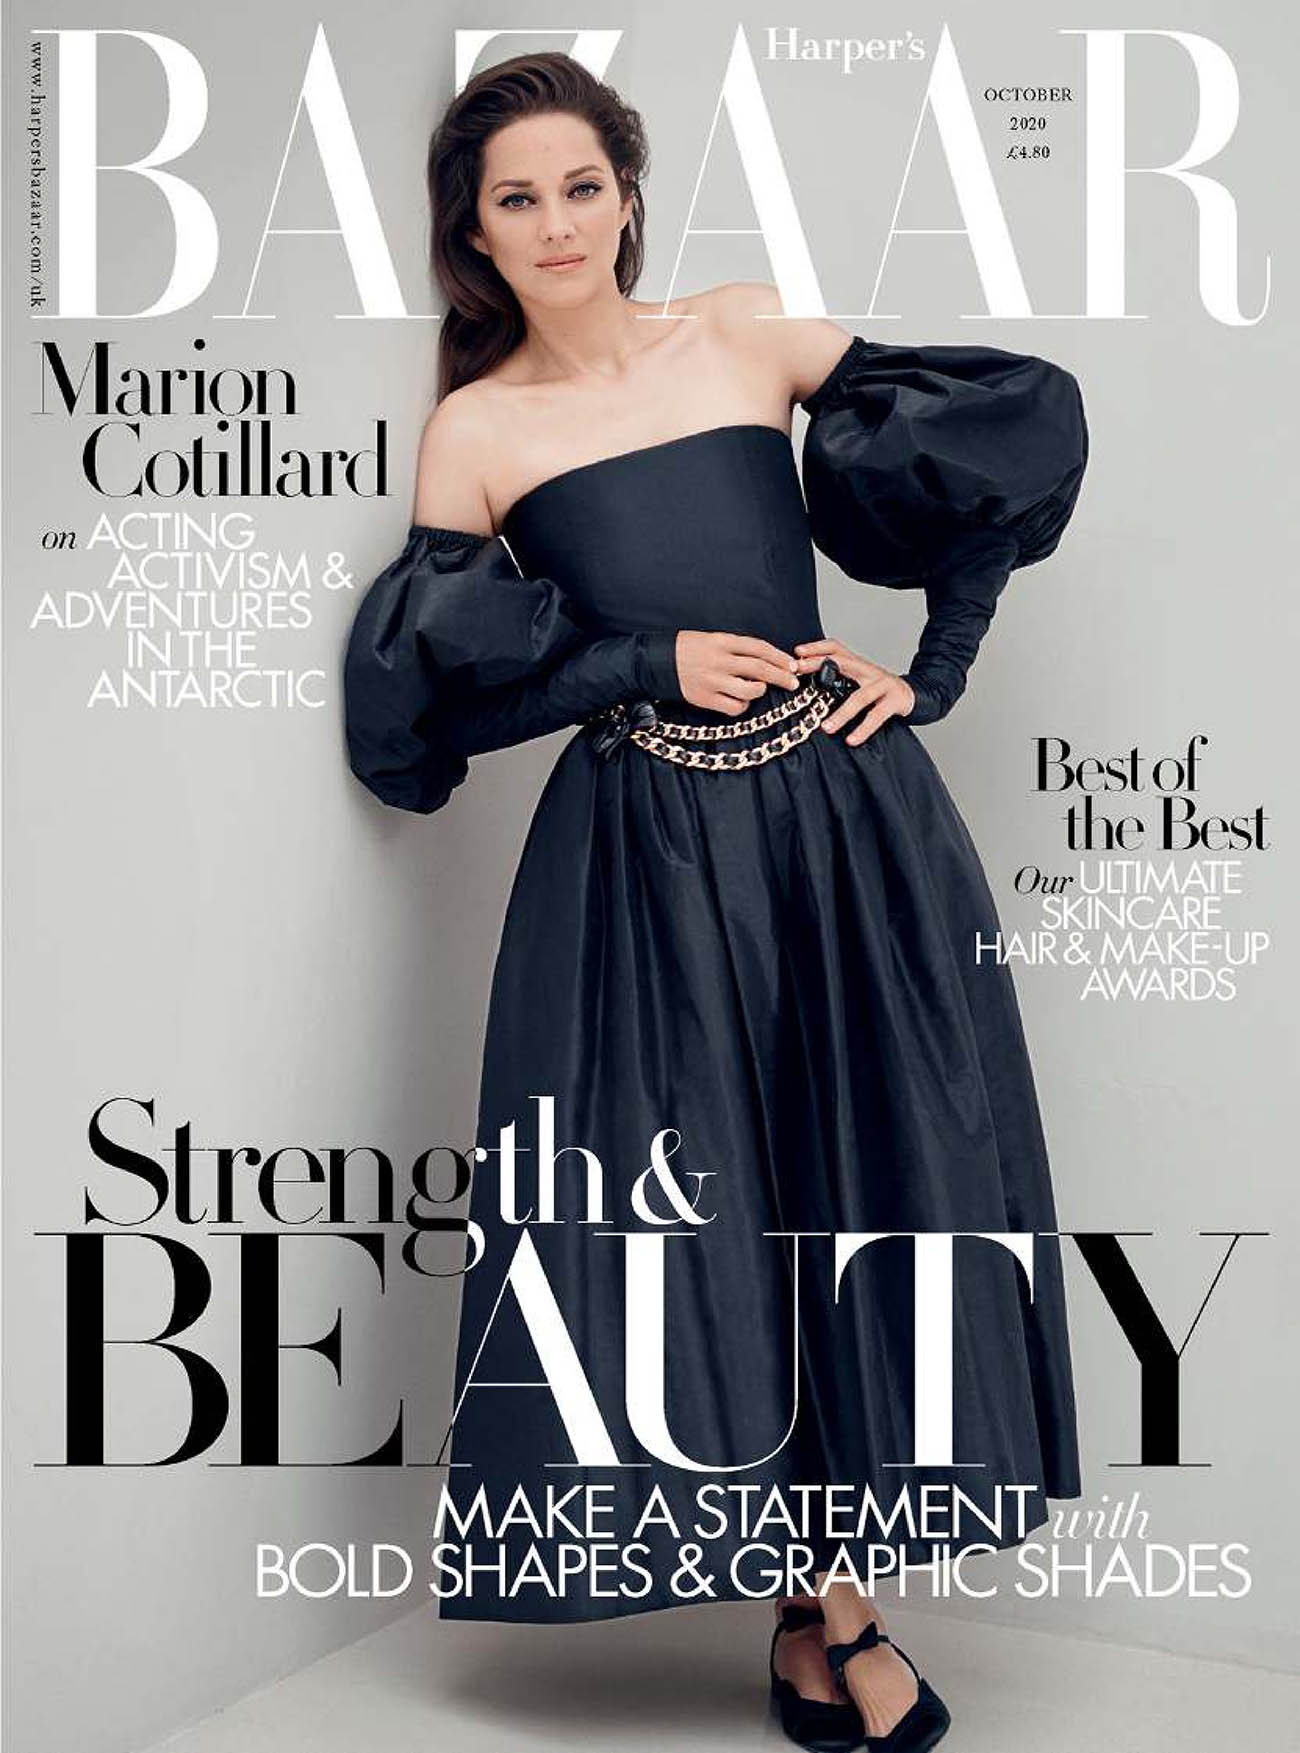 Marion Cotillard covers Harper's Bazaar UK October 2020 by Serge Leblon